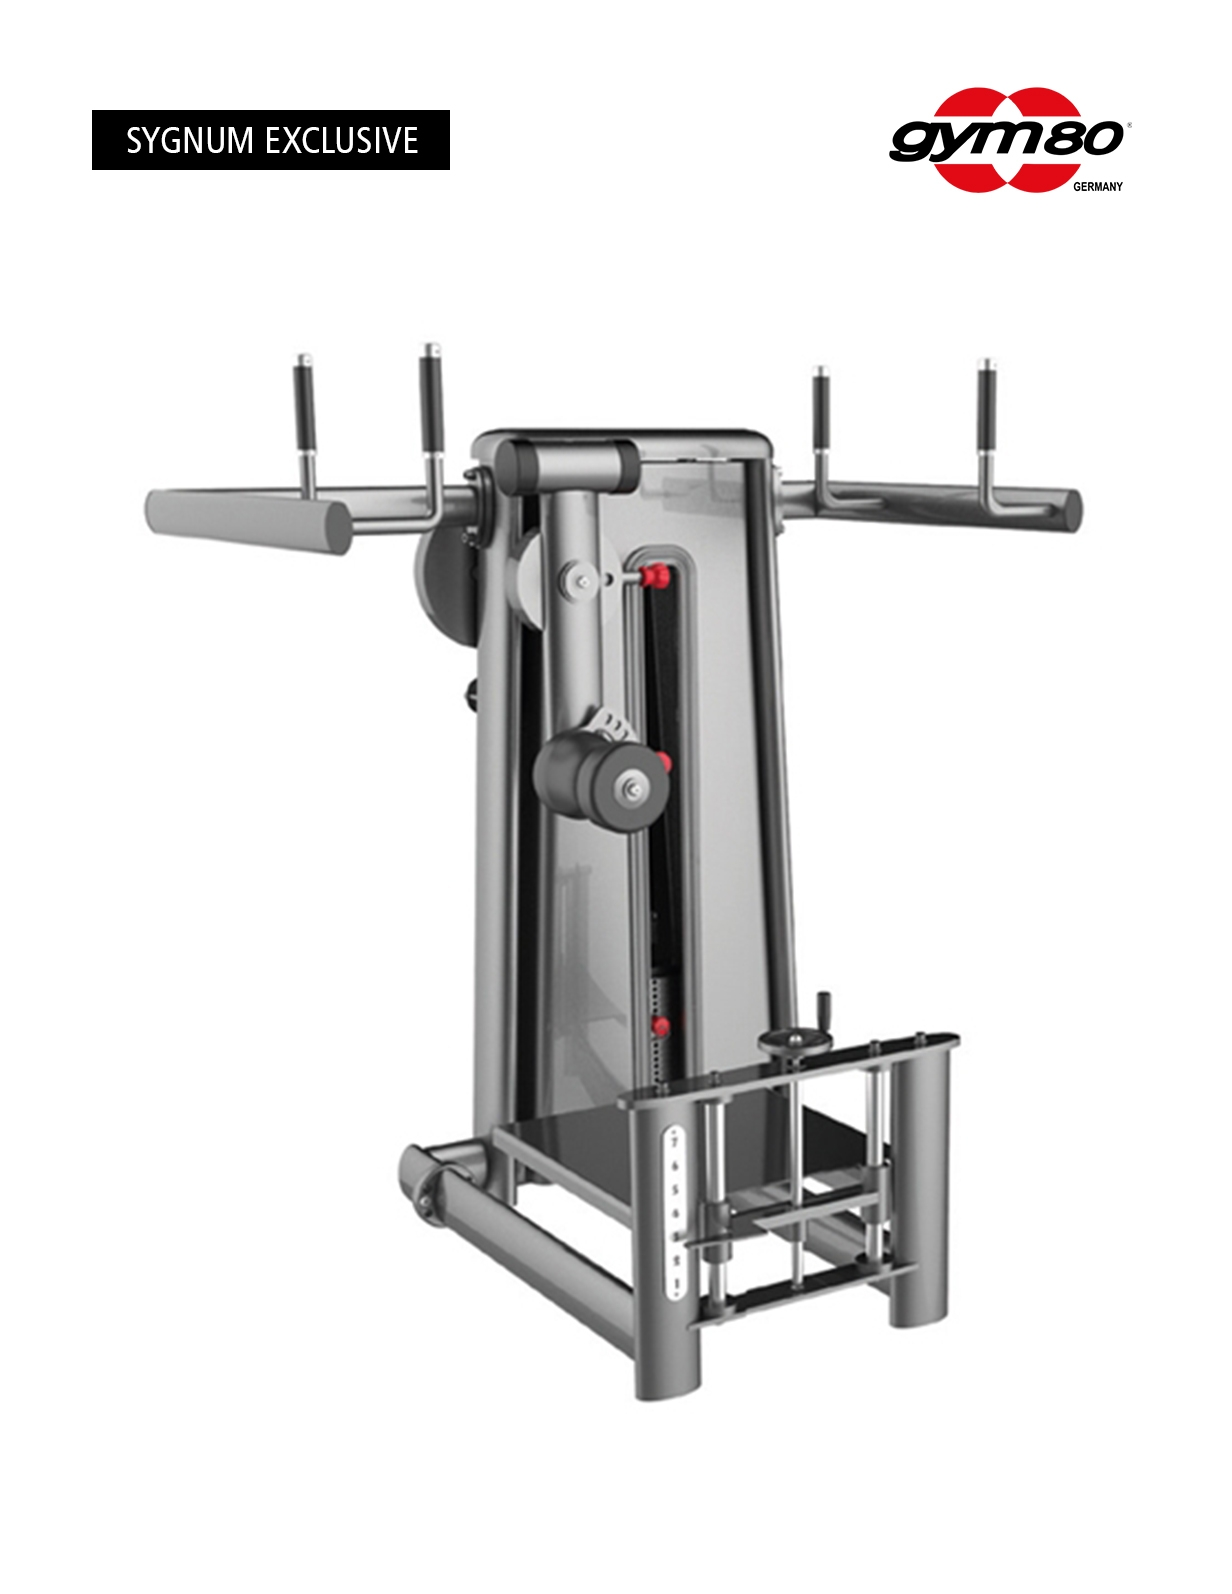 G3006 TOTAL HIP MACHINE